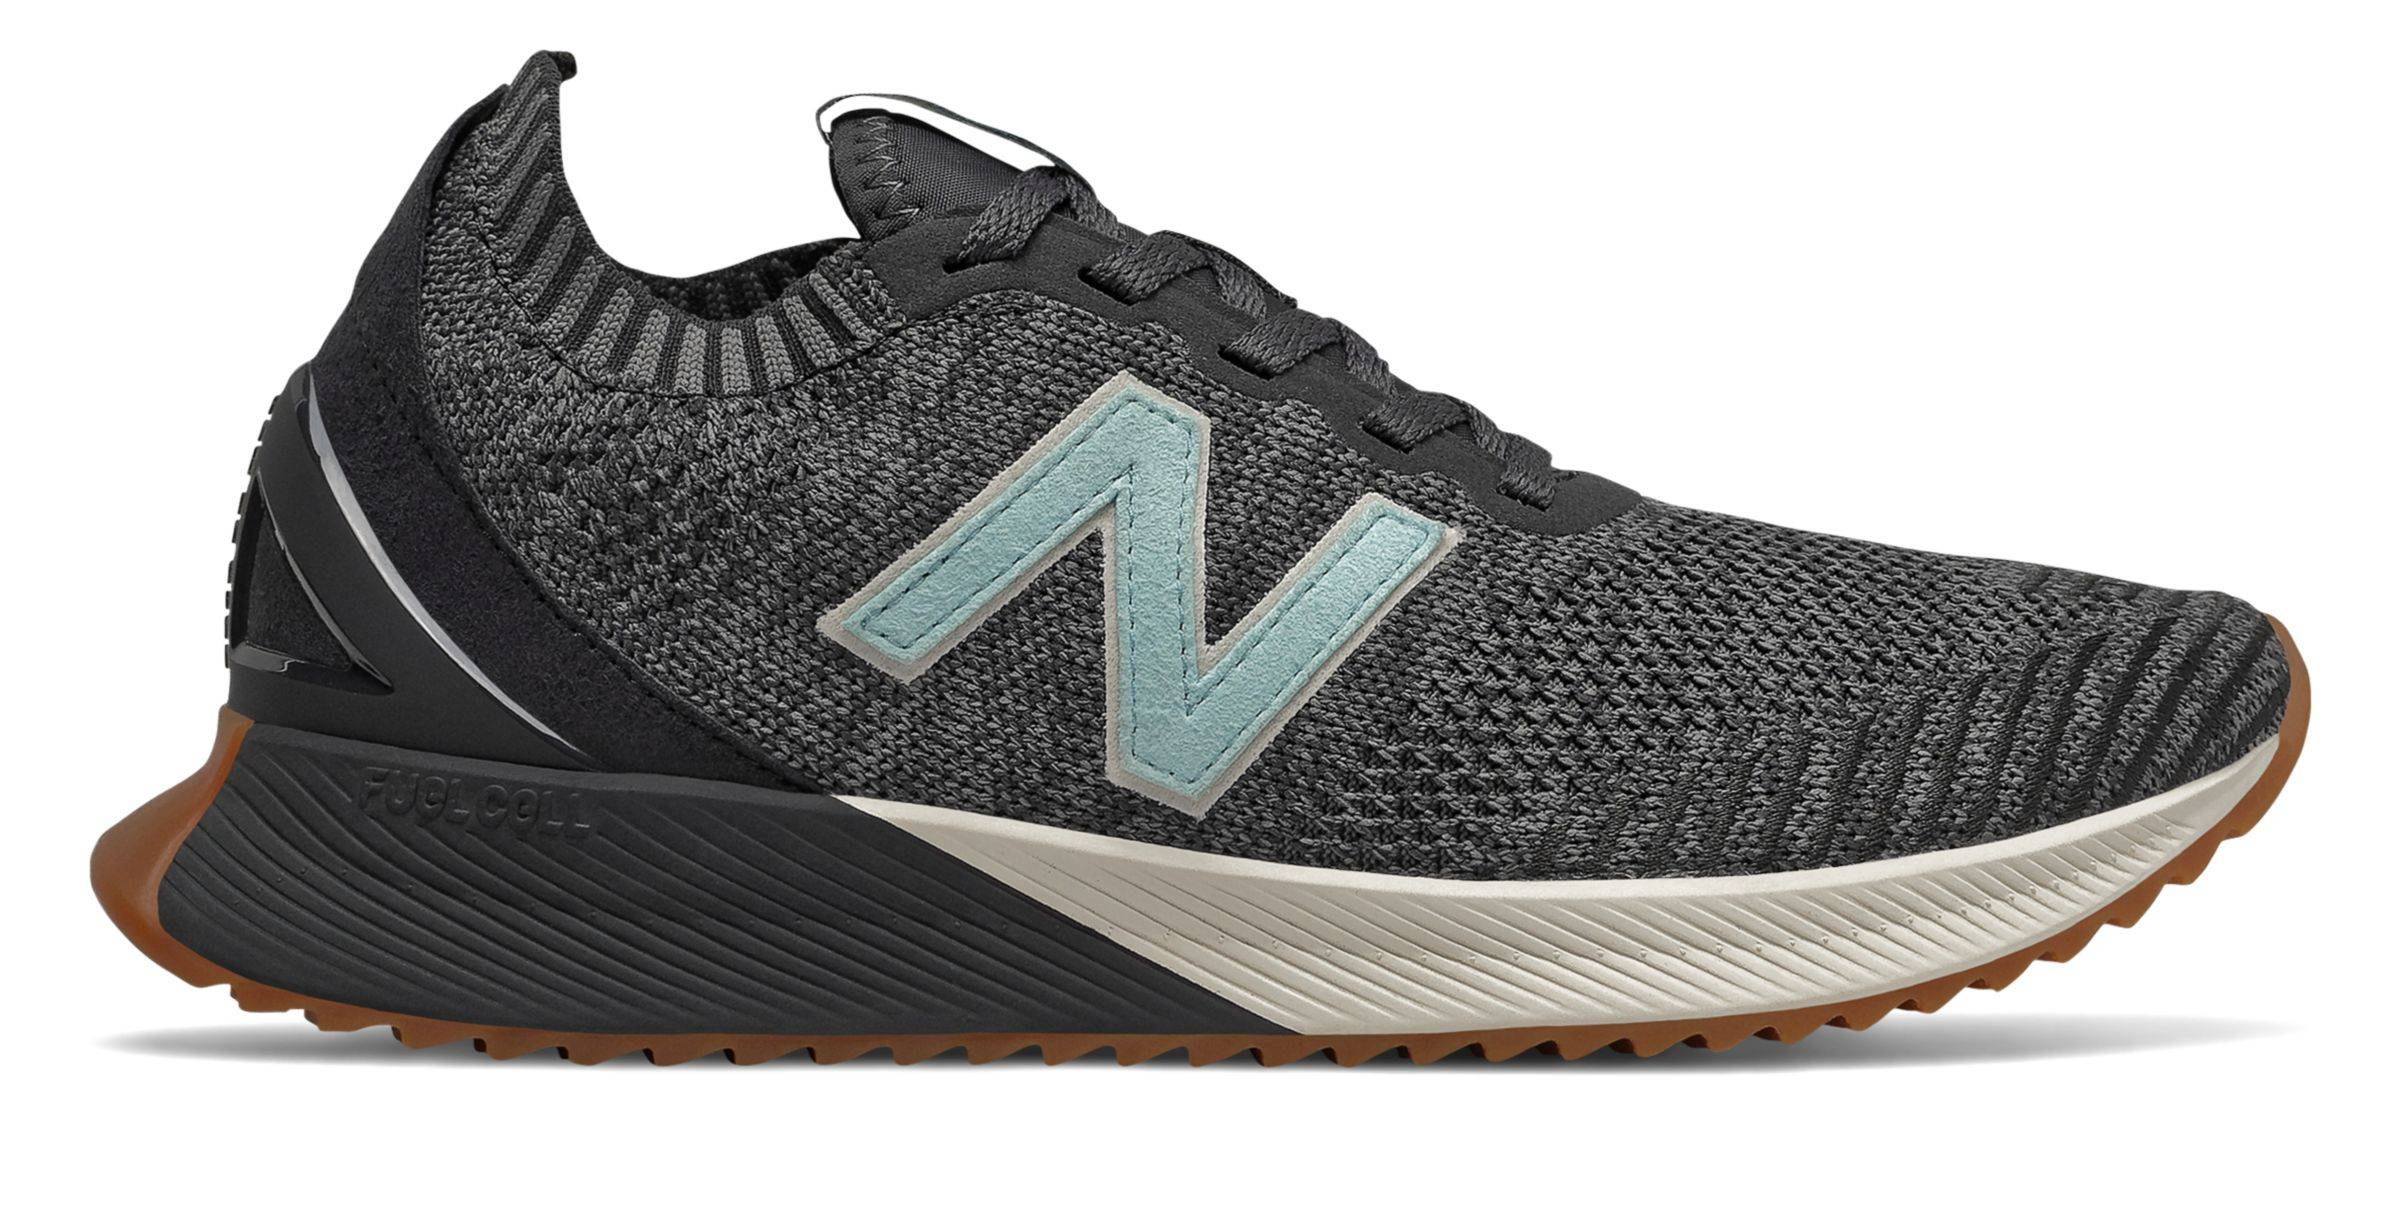 New Balance Women's FuelCell Echo Heritage Shoes Black with Grey & Blue  - Black with Grey & Blue - Size: 9.5